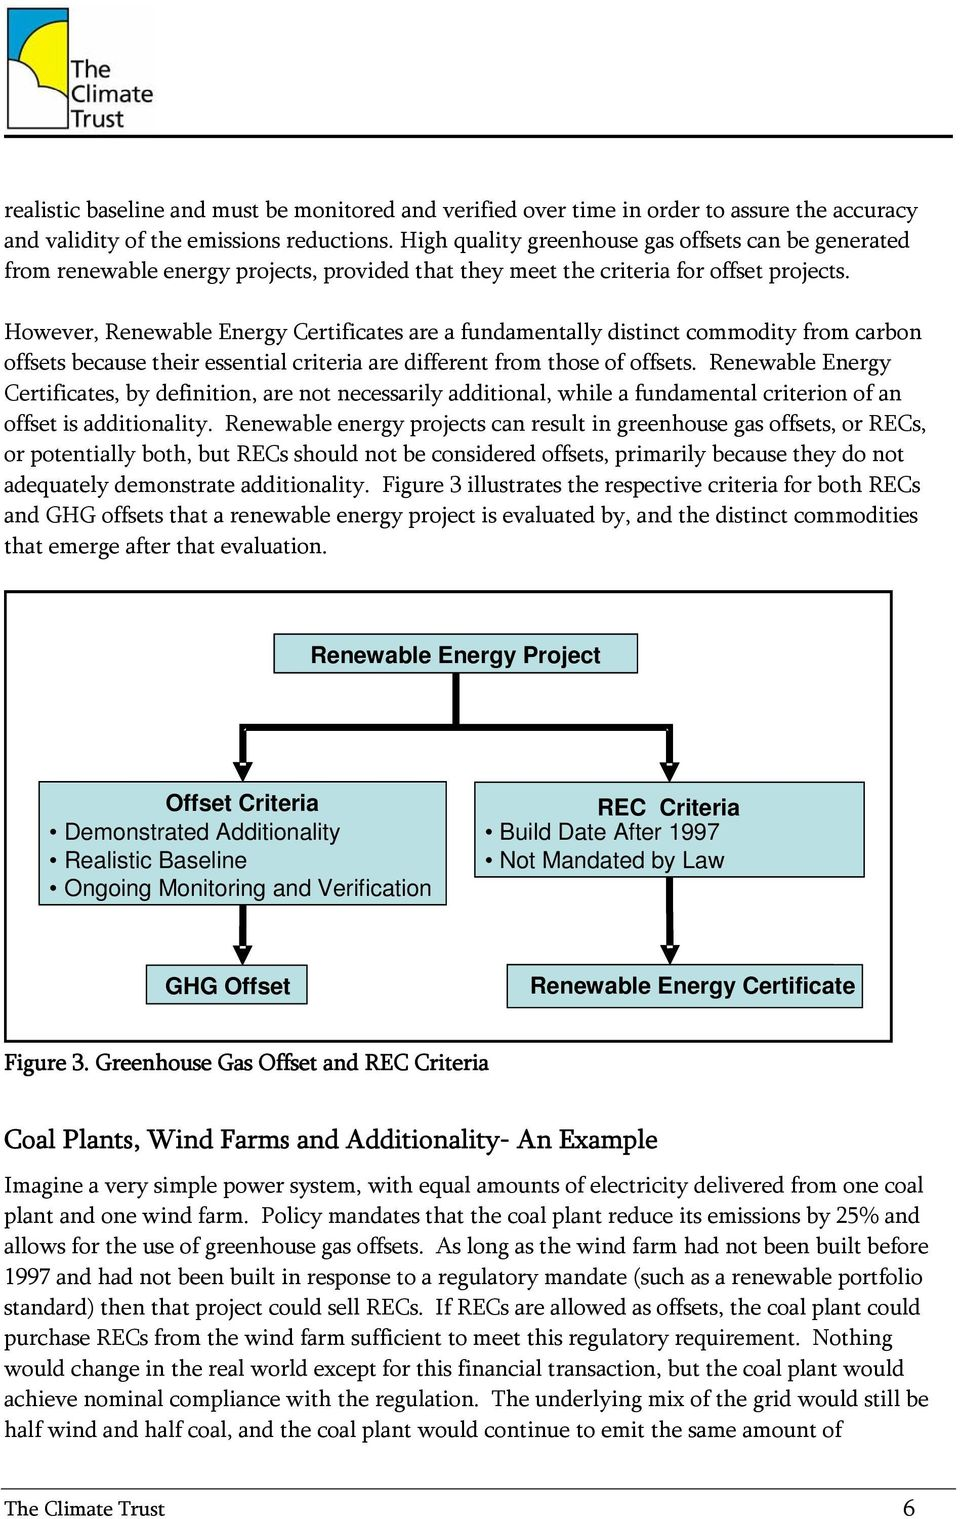 However, Renewable Energy Certificates are a fundamentally distinct commodity from carbon offsets because their essential criteria are different from those of offsets.